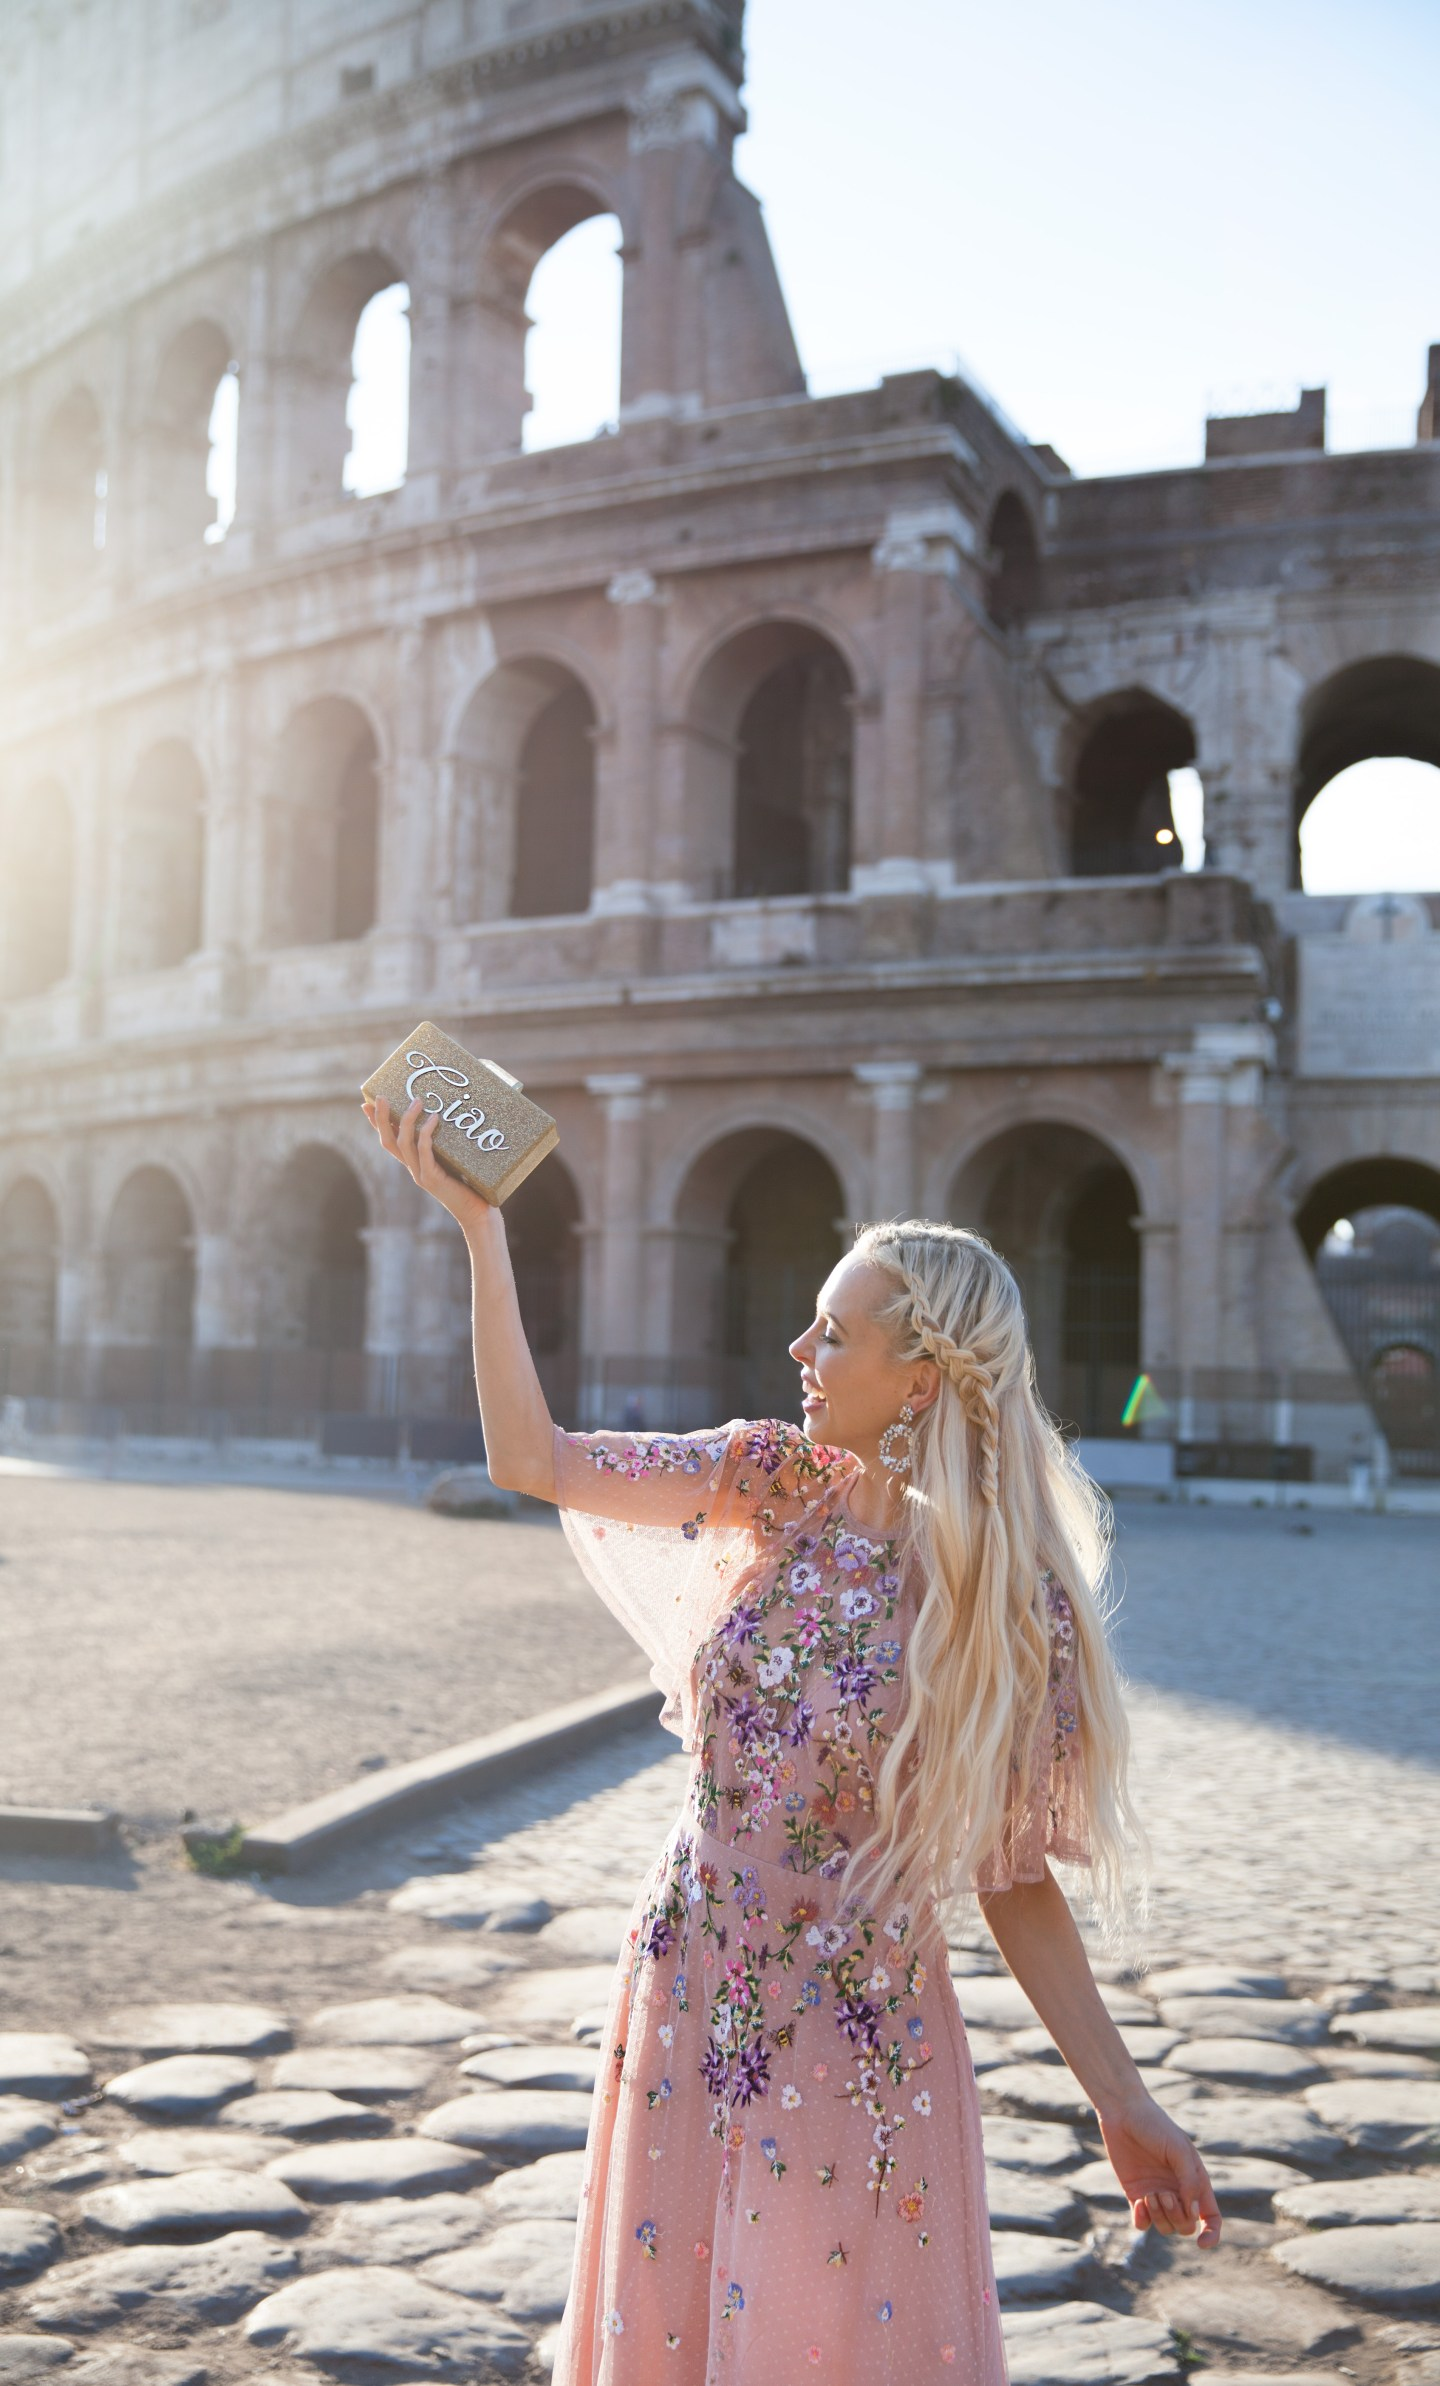 Colosseum_asos embroidered dress Rome | ASOS floral embroidered maxi dress featured by top San Francisco fashion blog, Lombard and Fifth: image of a blonde woman wearing a floral maxi dress at the Colosseum in Rome